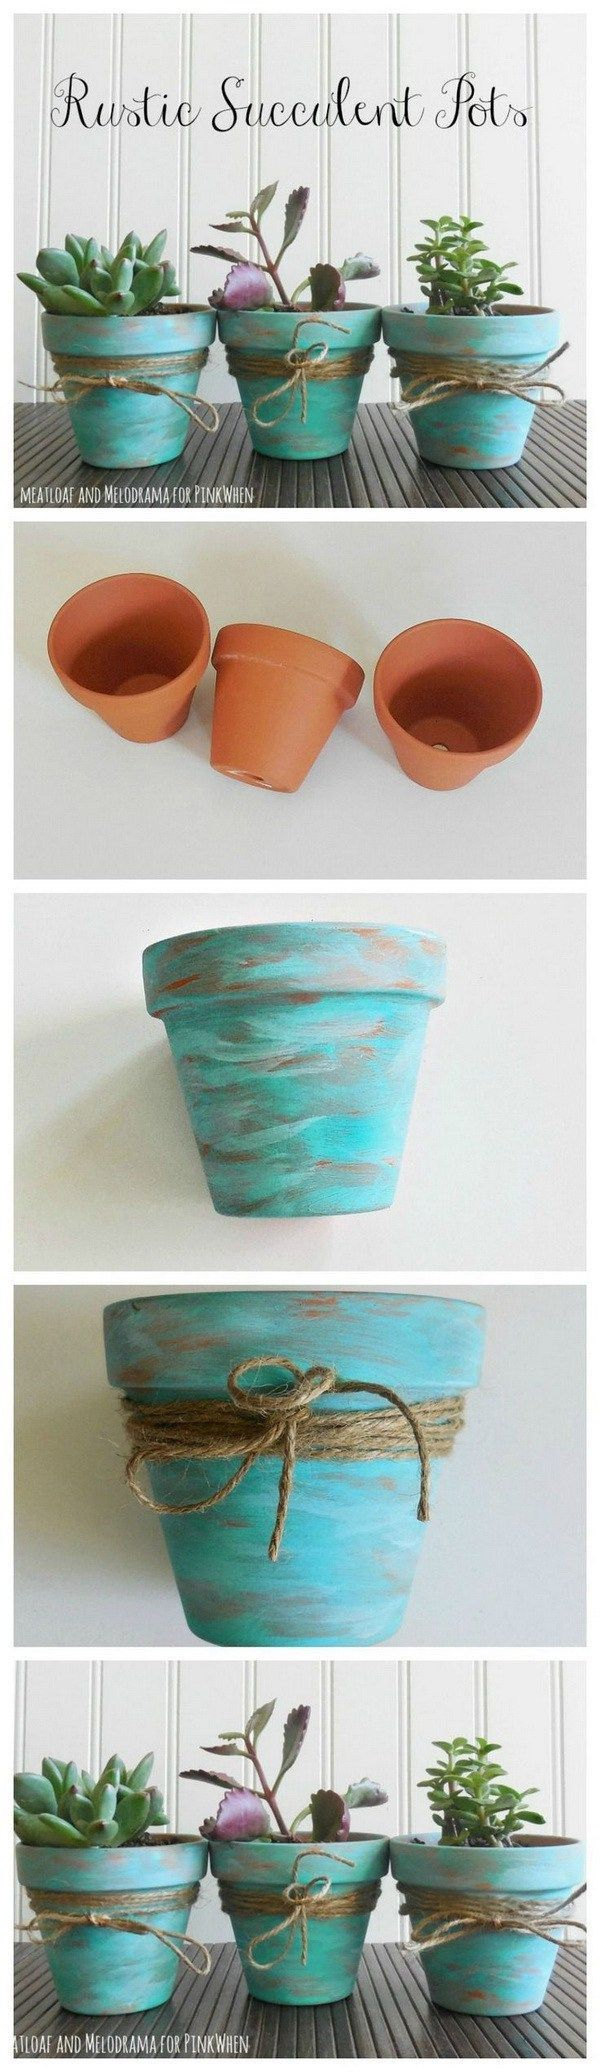 DIY Rustic Succulent Pots: The perfect addition to any table inside or out.